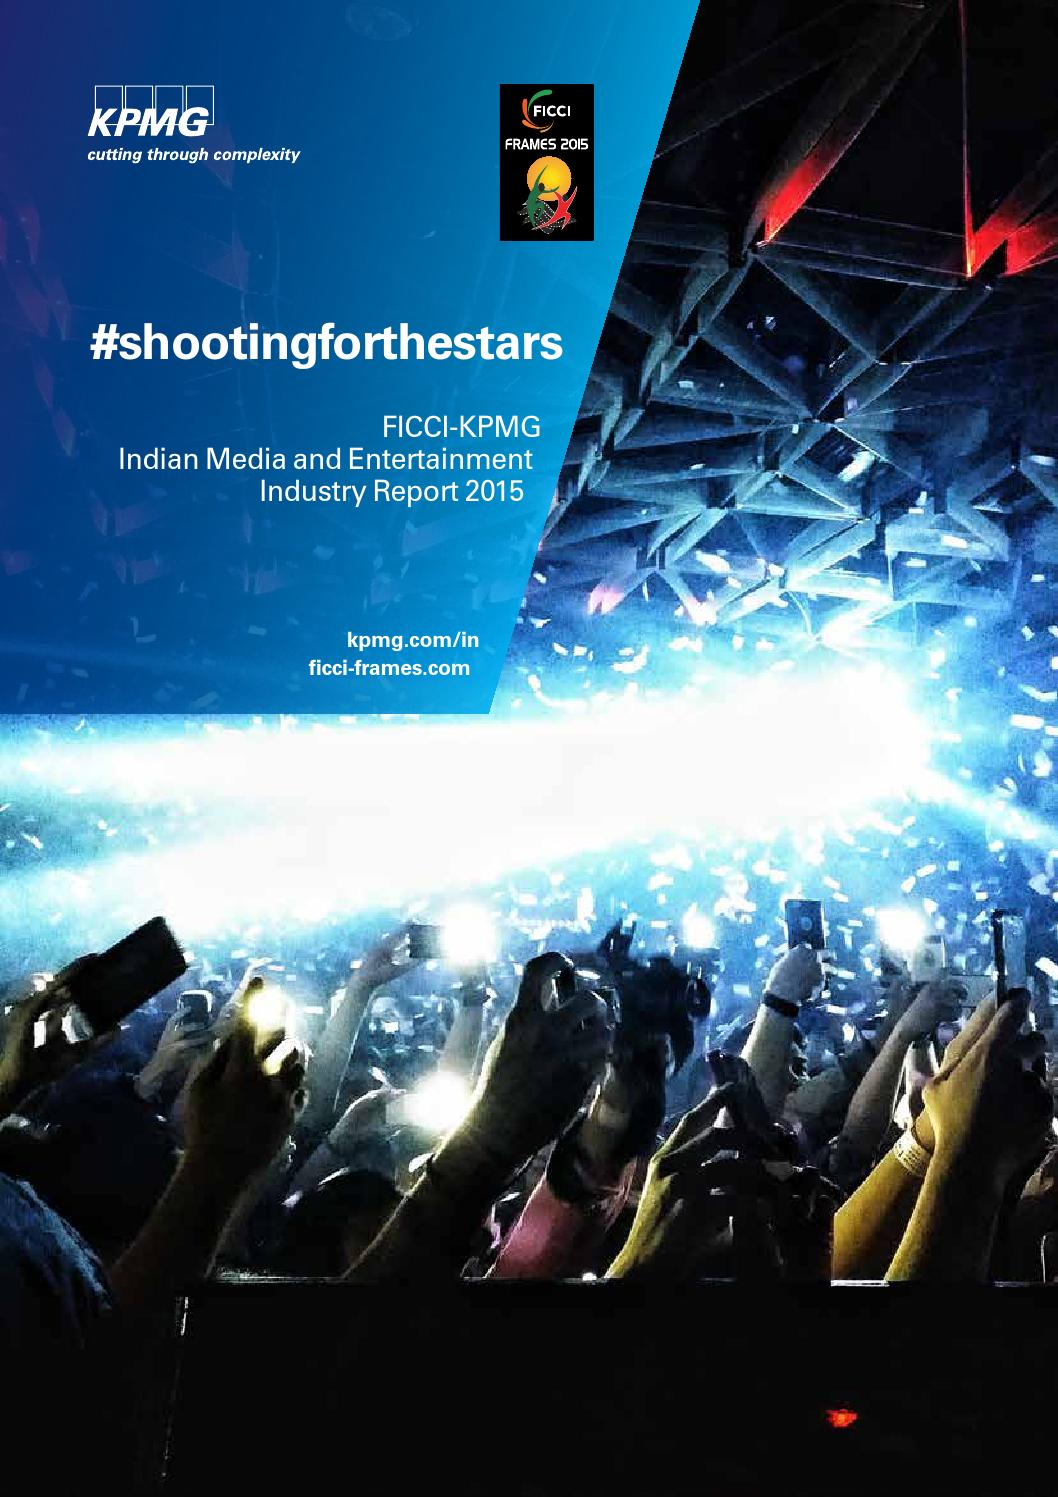 f3806de1caea FICCI-KPMG Indian Media and Entertainment Industry Report 2015 by  BestMediaInfo - issuu